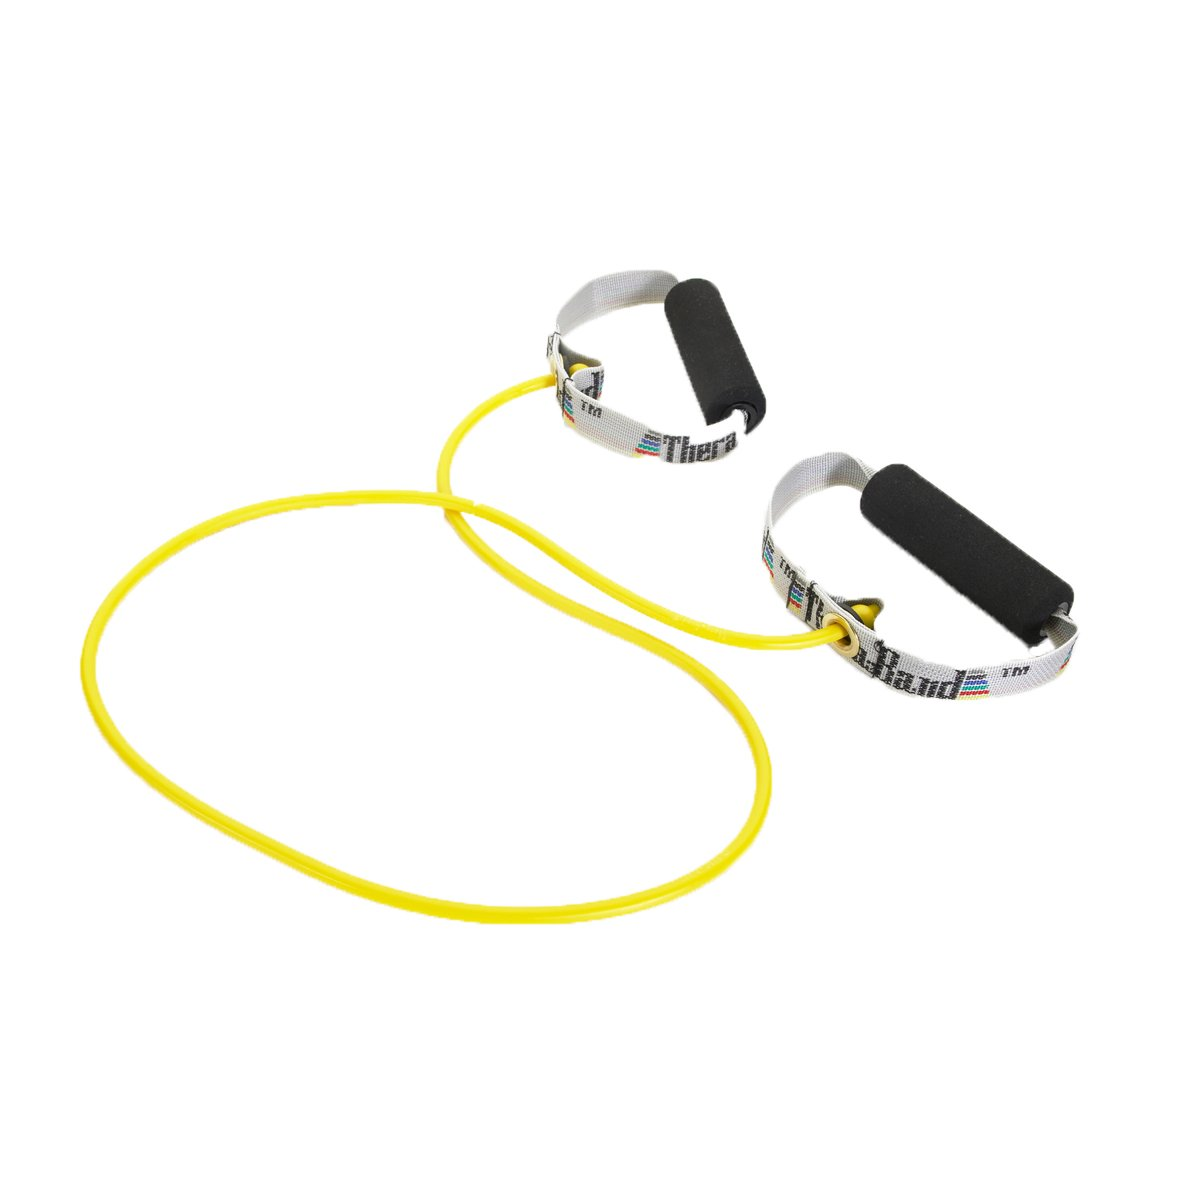 TheraBand Professional Latex Resistance Tubing with Soft Handles for Physical Therapy, Pilates, Yoga, At-Home Workouts, and Rehabilitation, 48 in, Yellow, Thin, Beginner Level 2